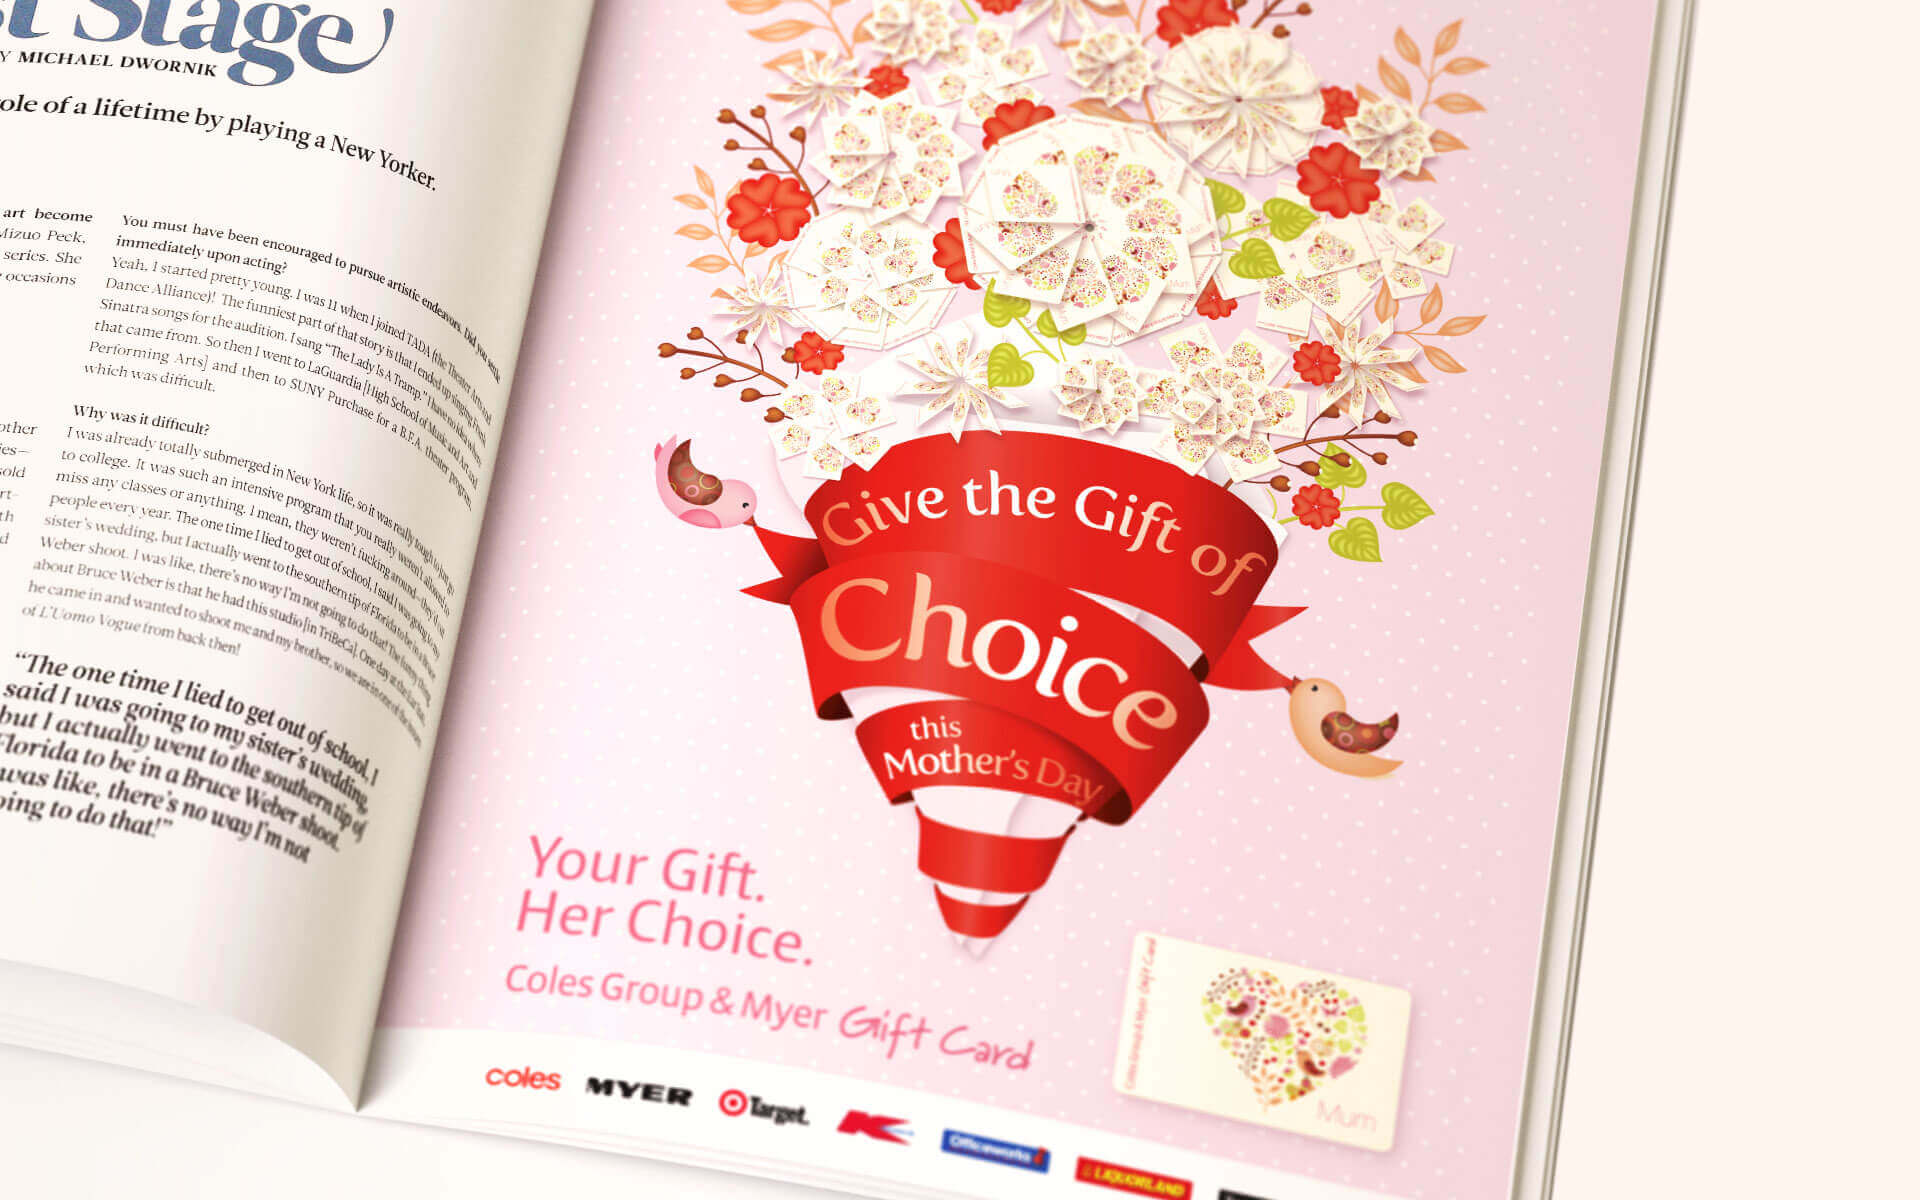 'Give the Gift of Choice' Coles Mothers Day Gift Card magazine ad.